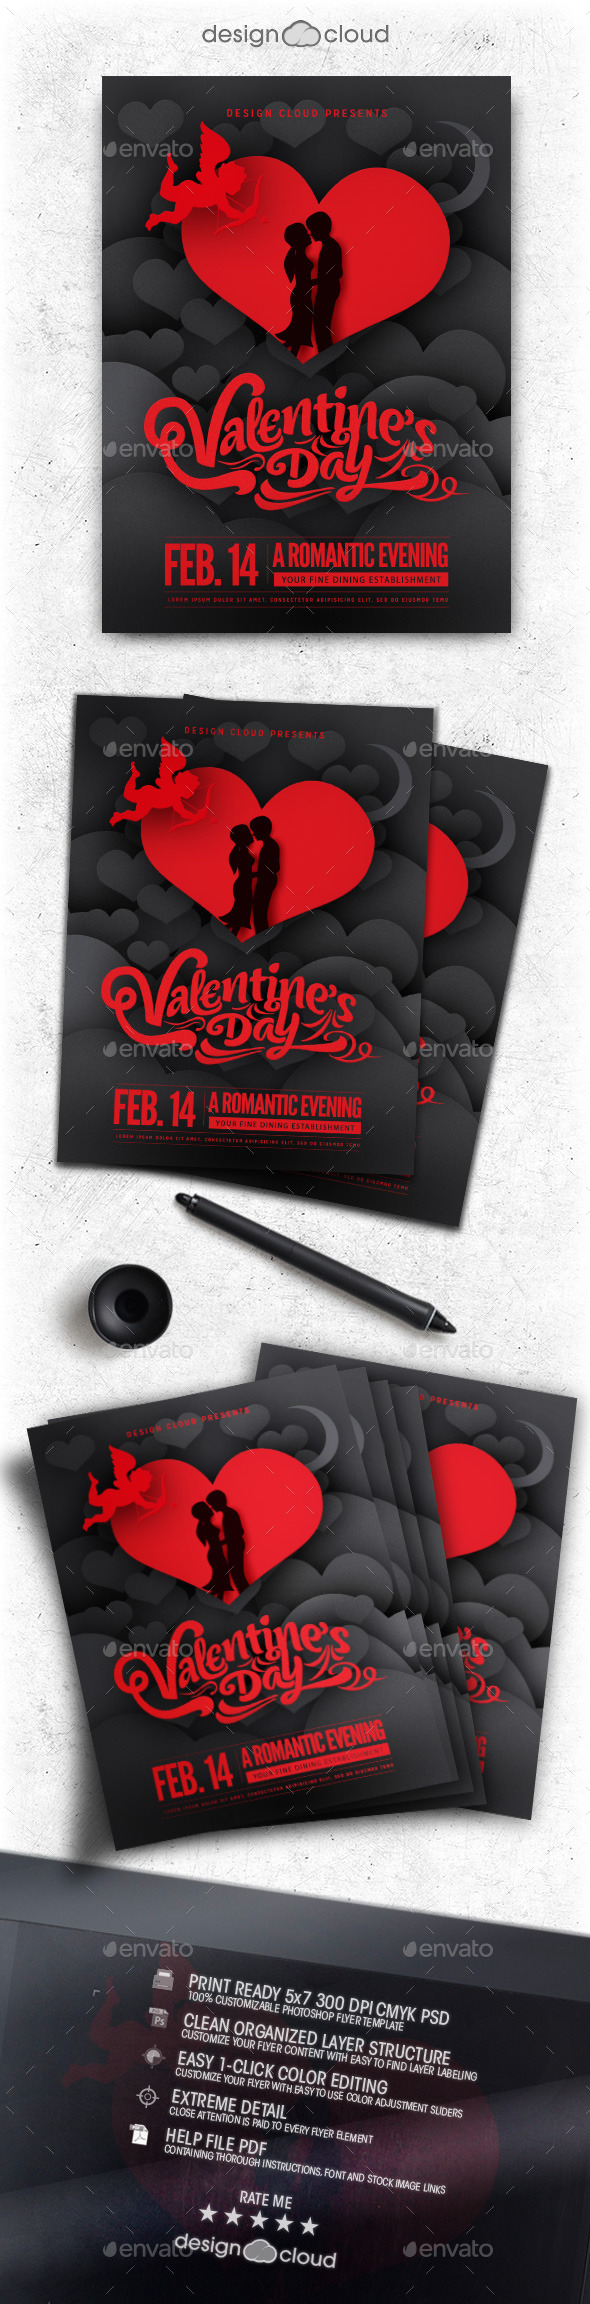 Elegant Shaded Valentine Flyer Template